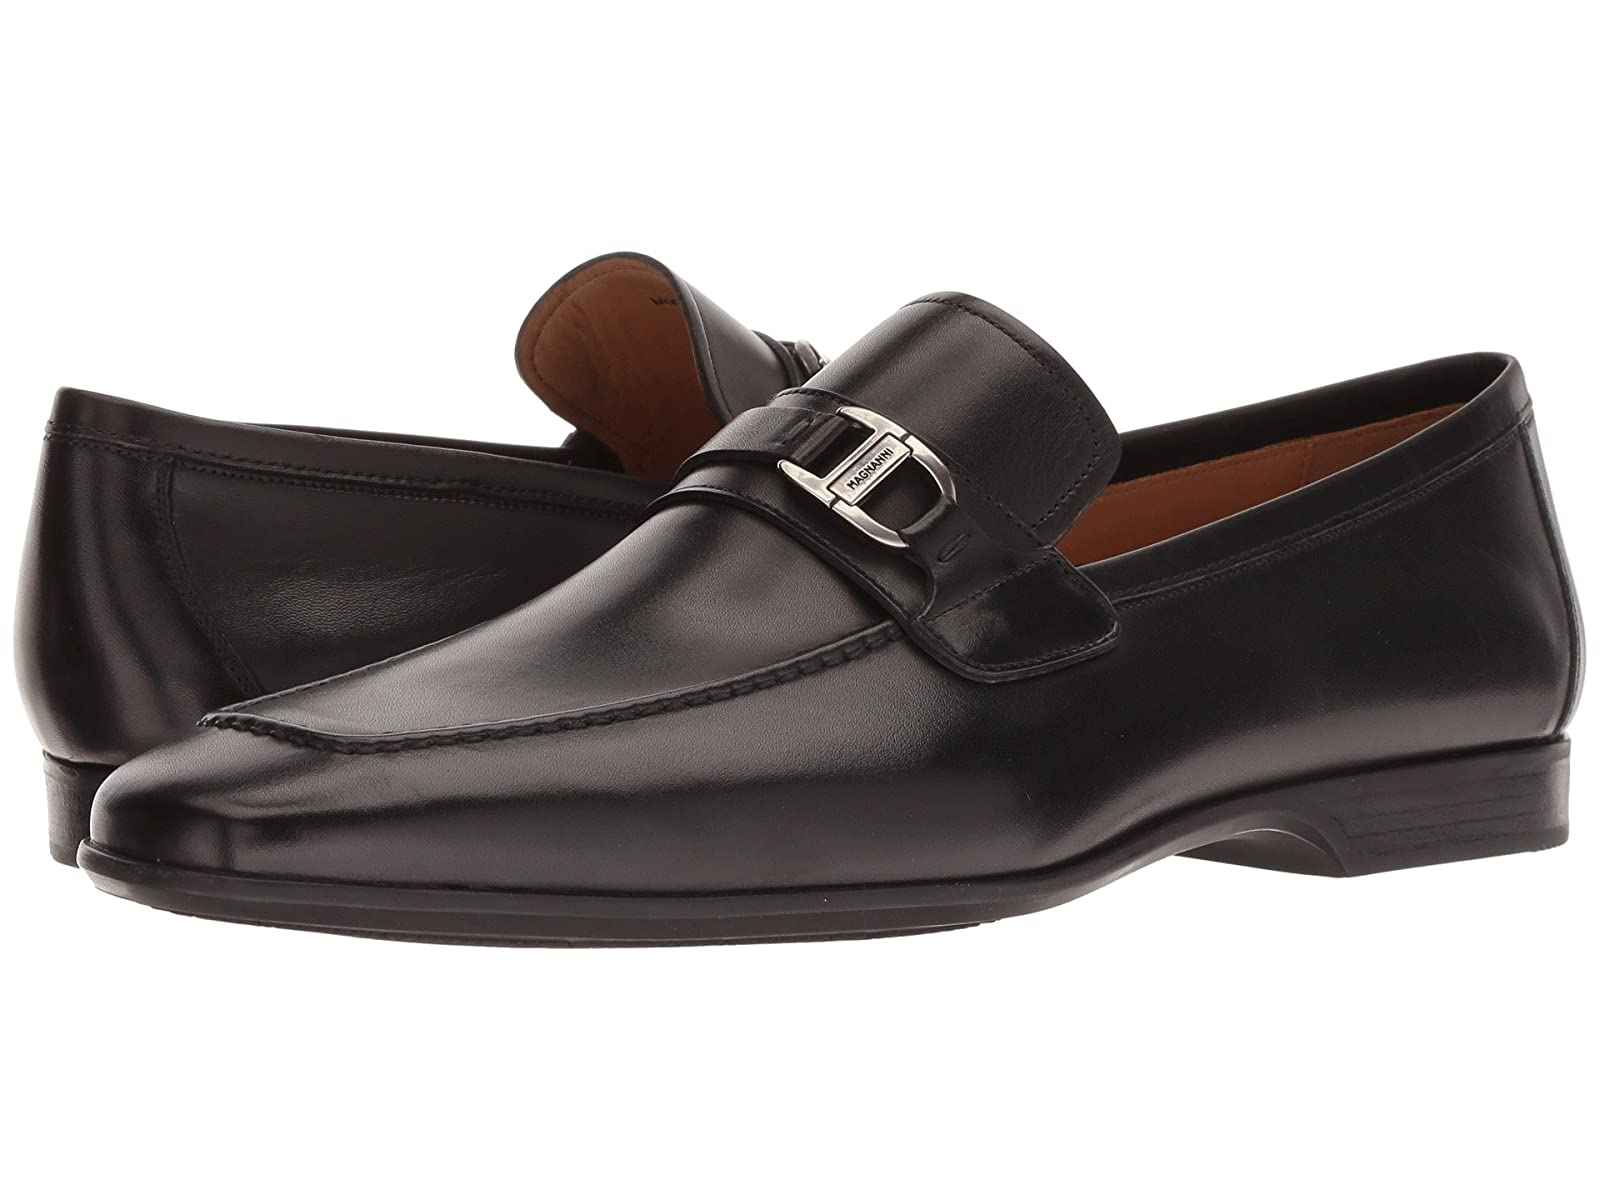 Magnanni RevaAtmospheric grades have affordable shoes